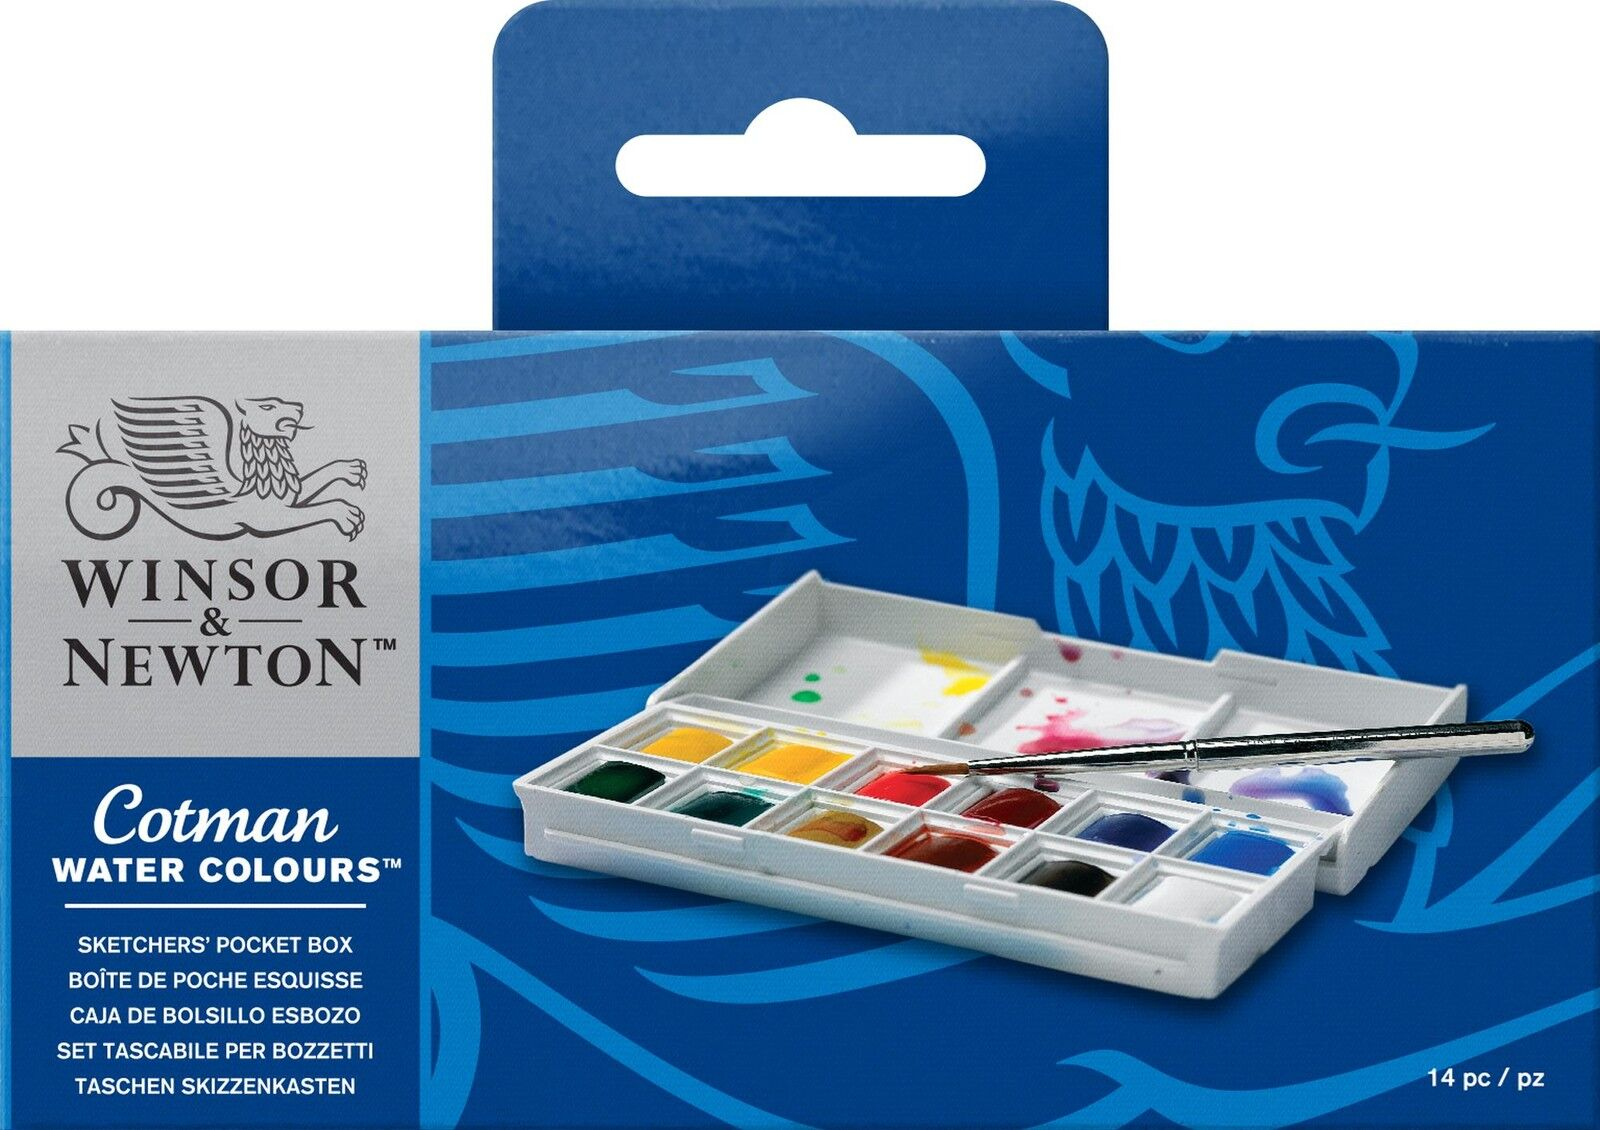 Winsor & Newton Cotman Watercolour Set Sketchers Pocket Box 12 Half Pans 0